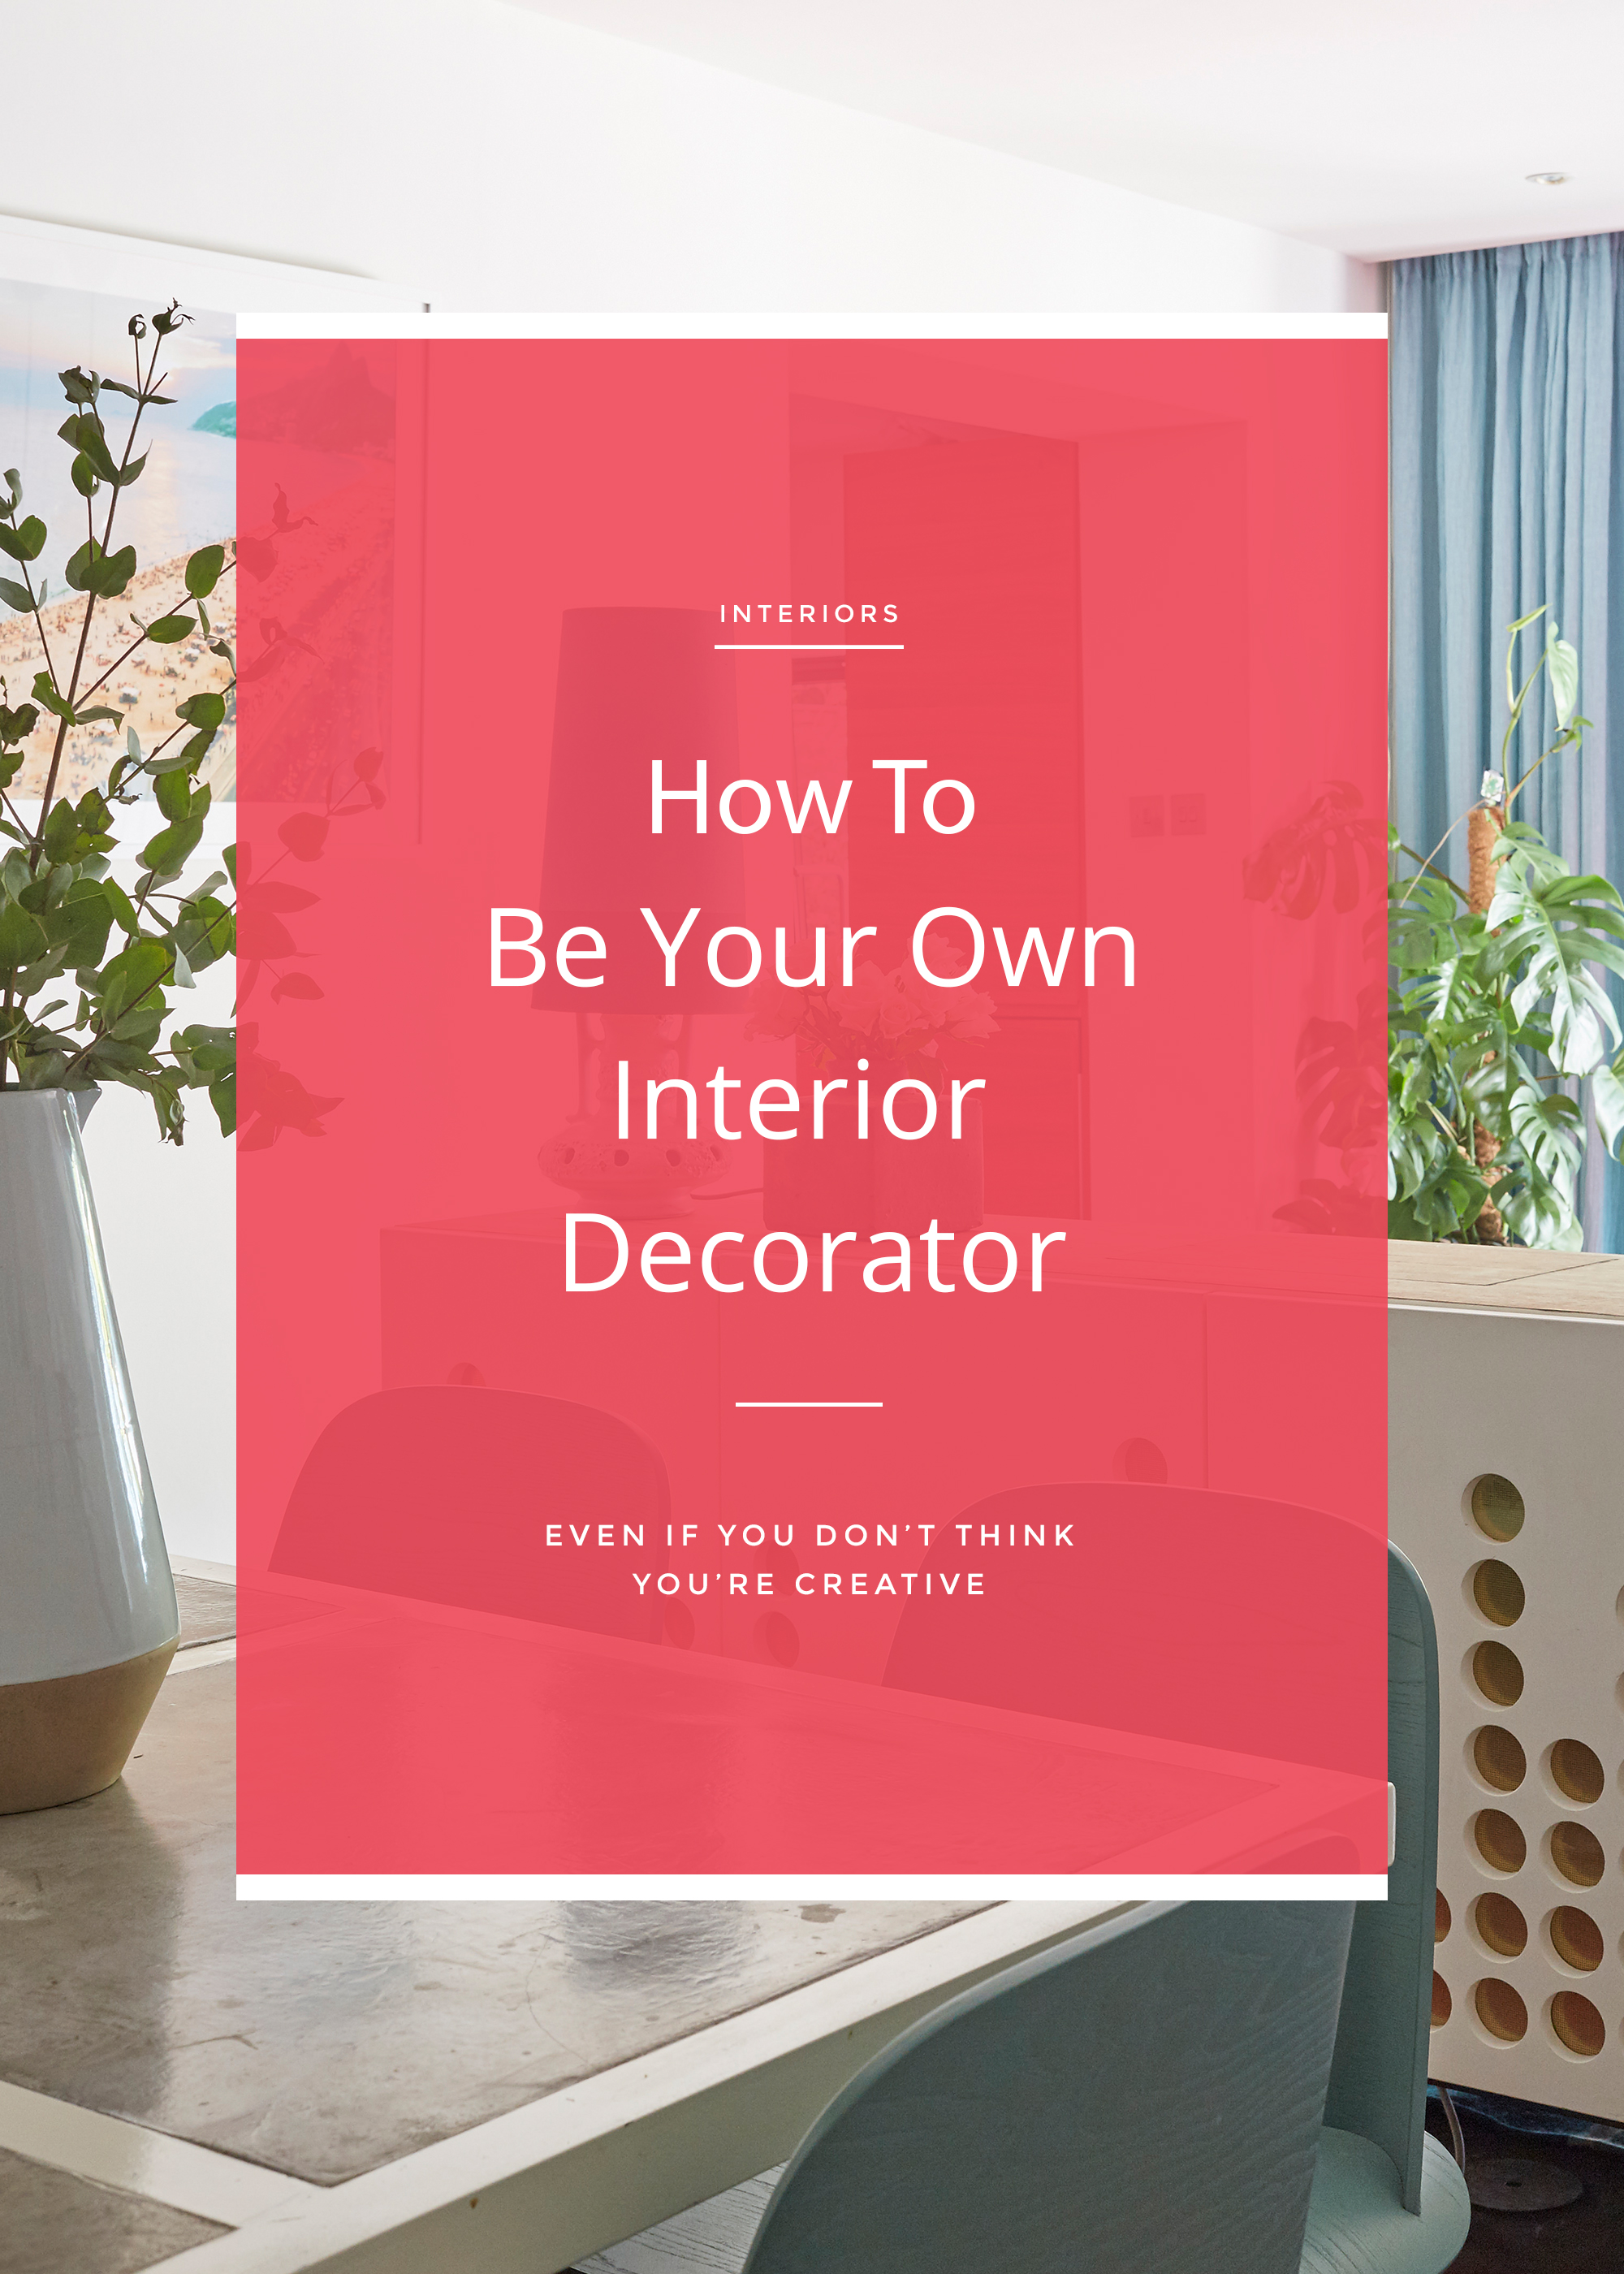 You can be your own interior decorator - Issy Zinaburg